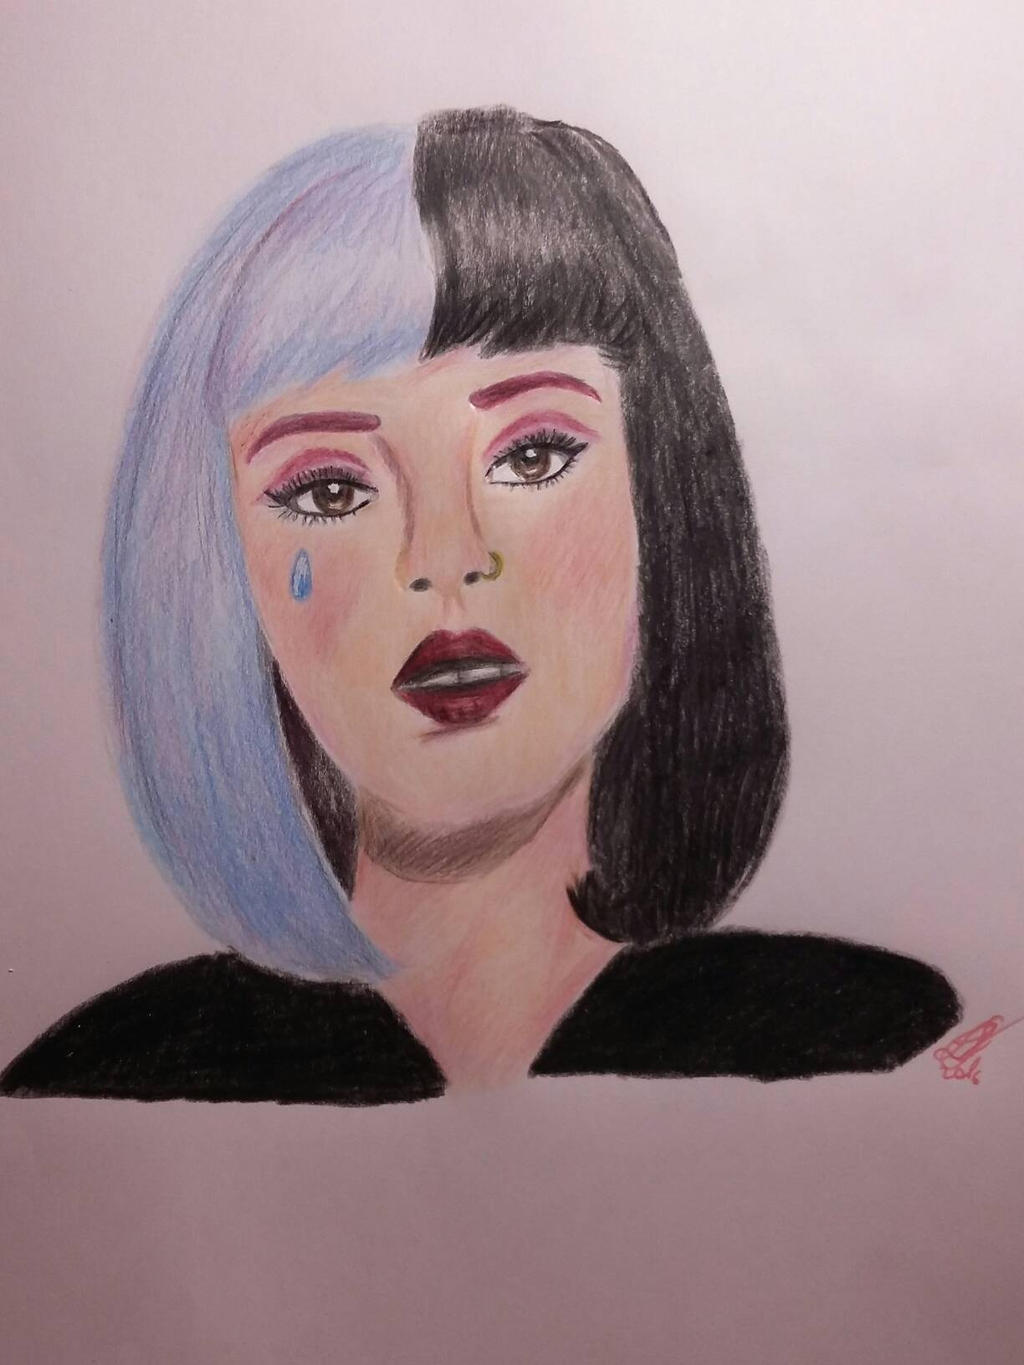 Melanie Martinez Cry Baby Drawing By Larischannelarts Melanie Martinez Cry  Baby Drawing By Larischannelarts